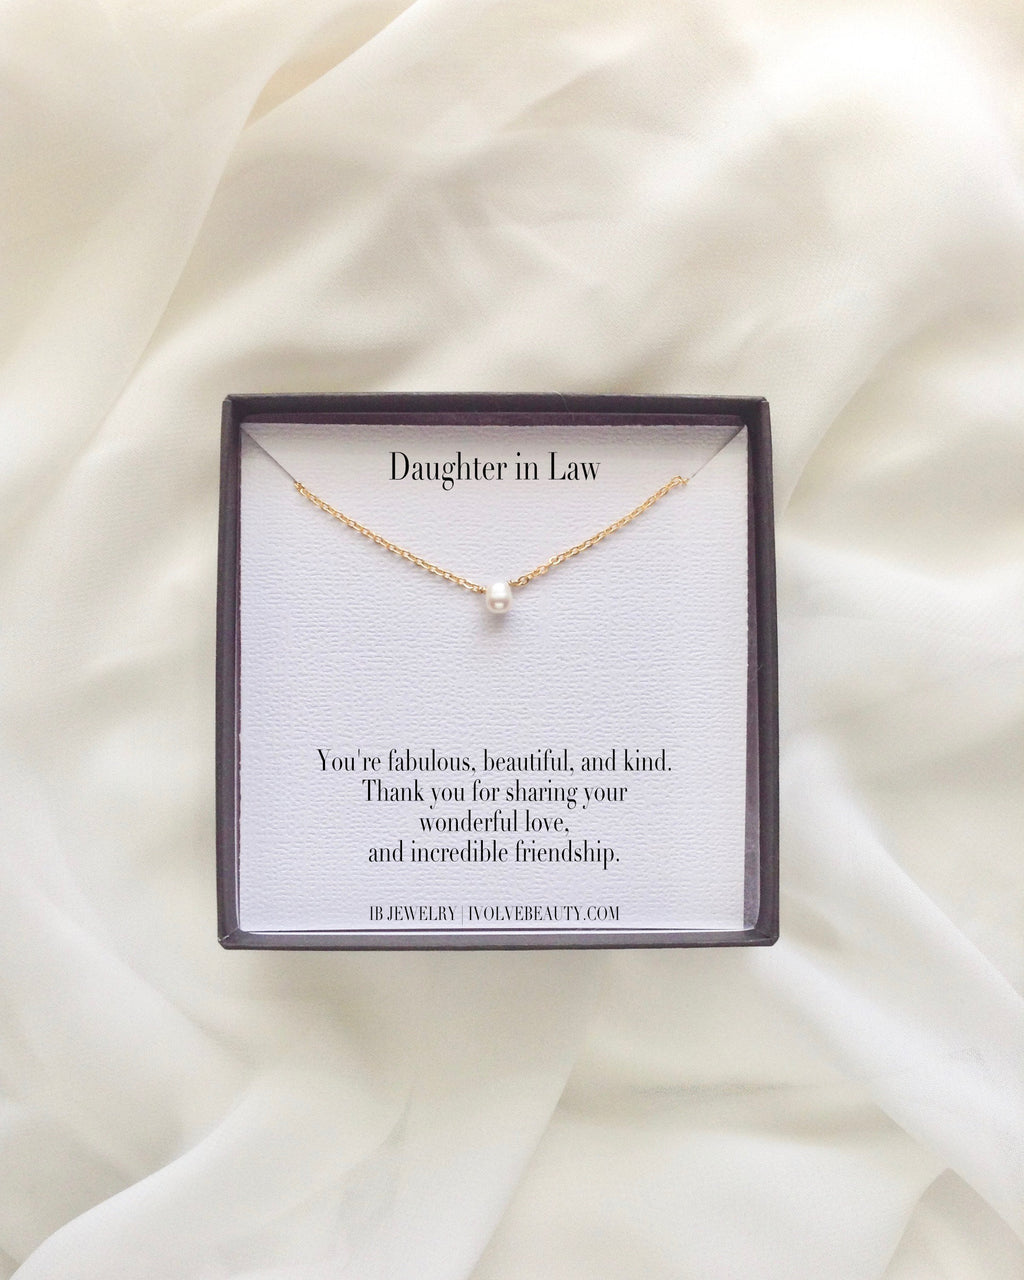 Daughter in Law Meaningful Necklace Gift | IB Jewelry